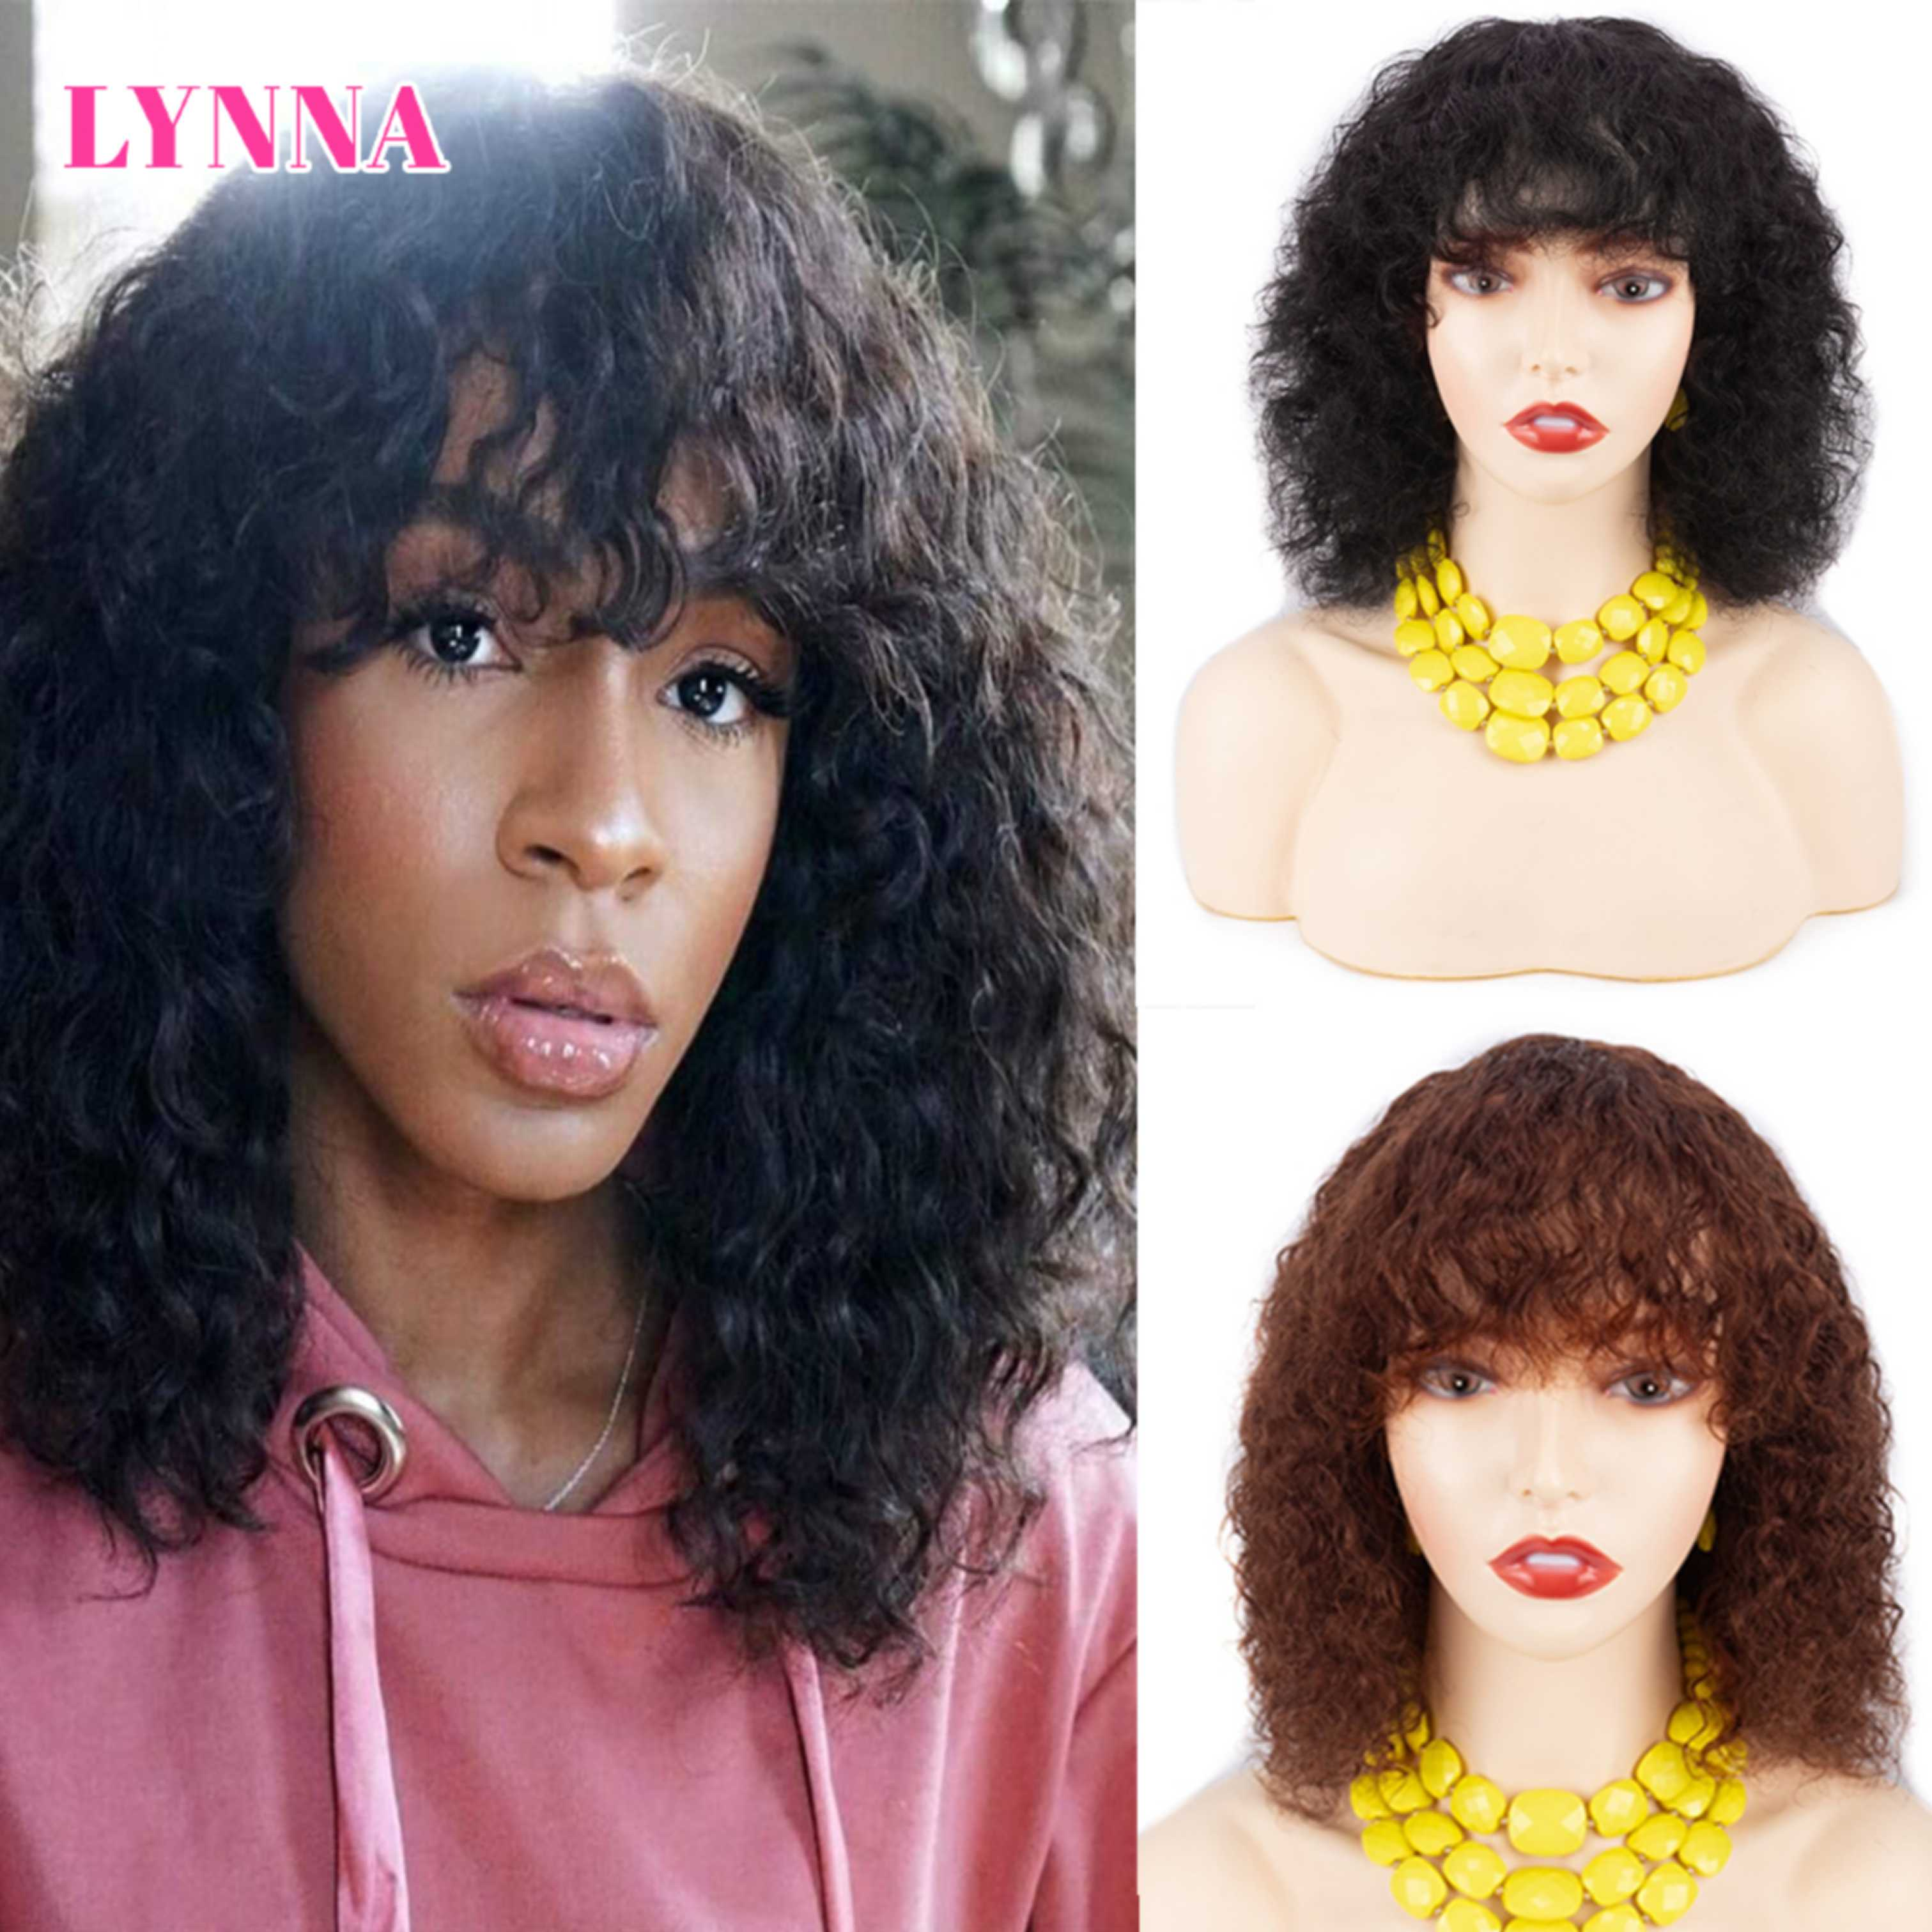 Short Jerry Curly Human Hair Wig With Bangs Bob Curly Wigs With Fringe Human Hair wigs Full Machine